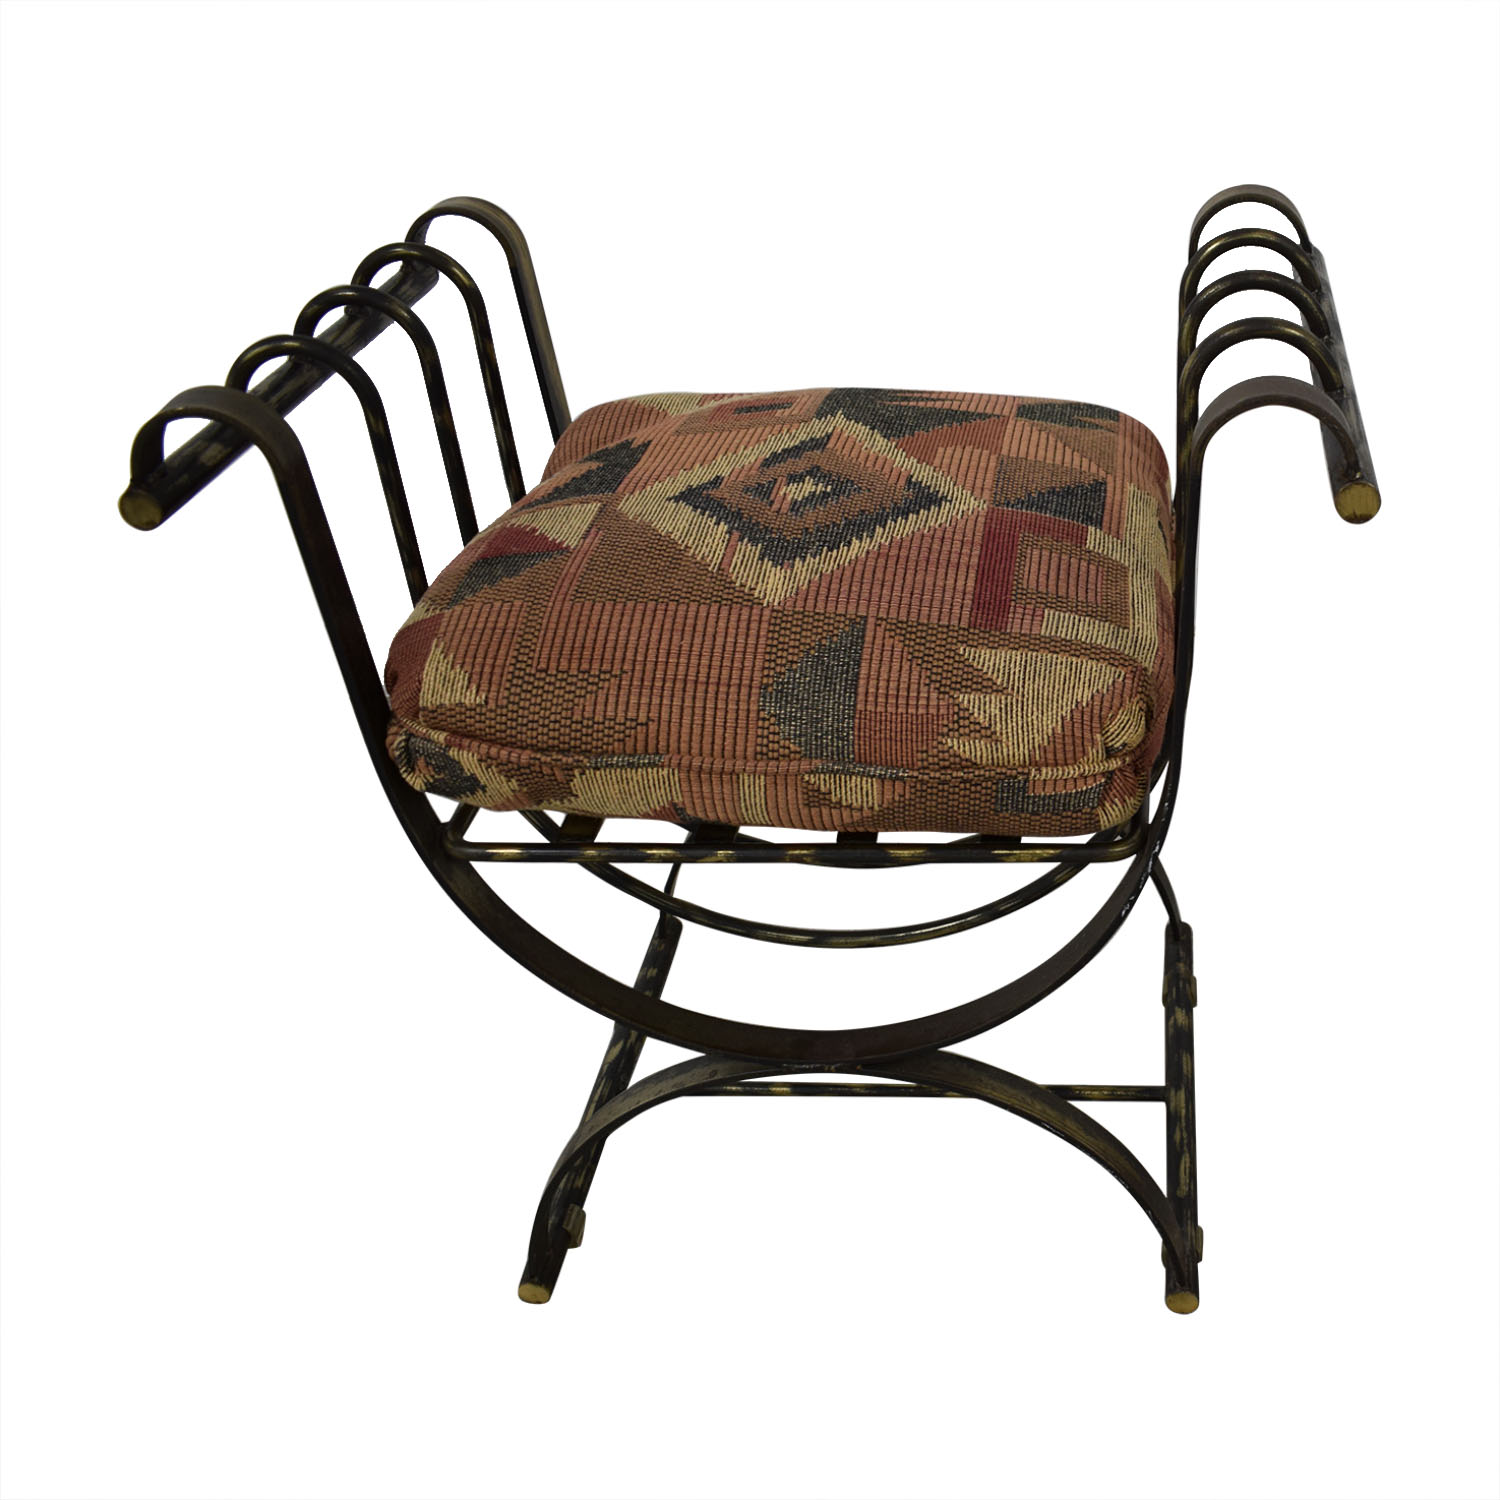 Wrought Iron Decorative Seats